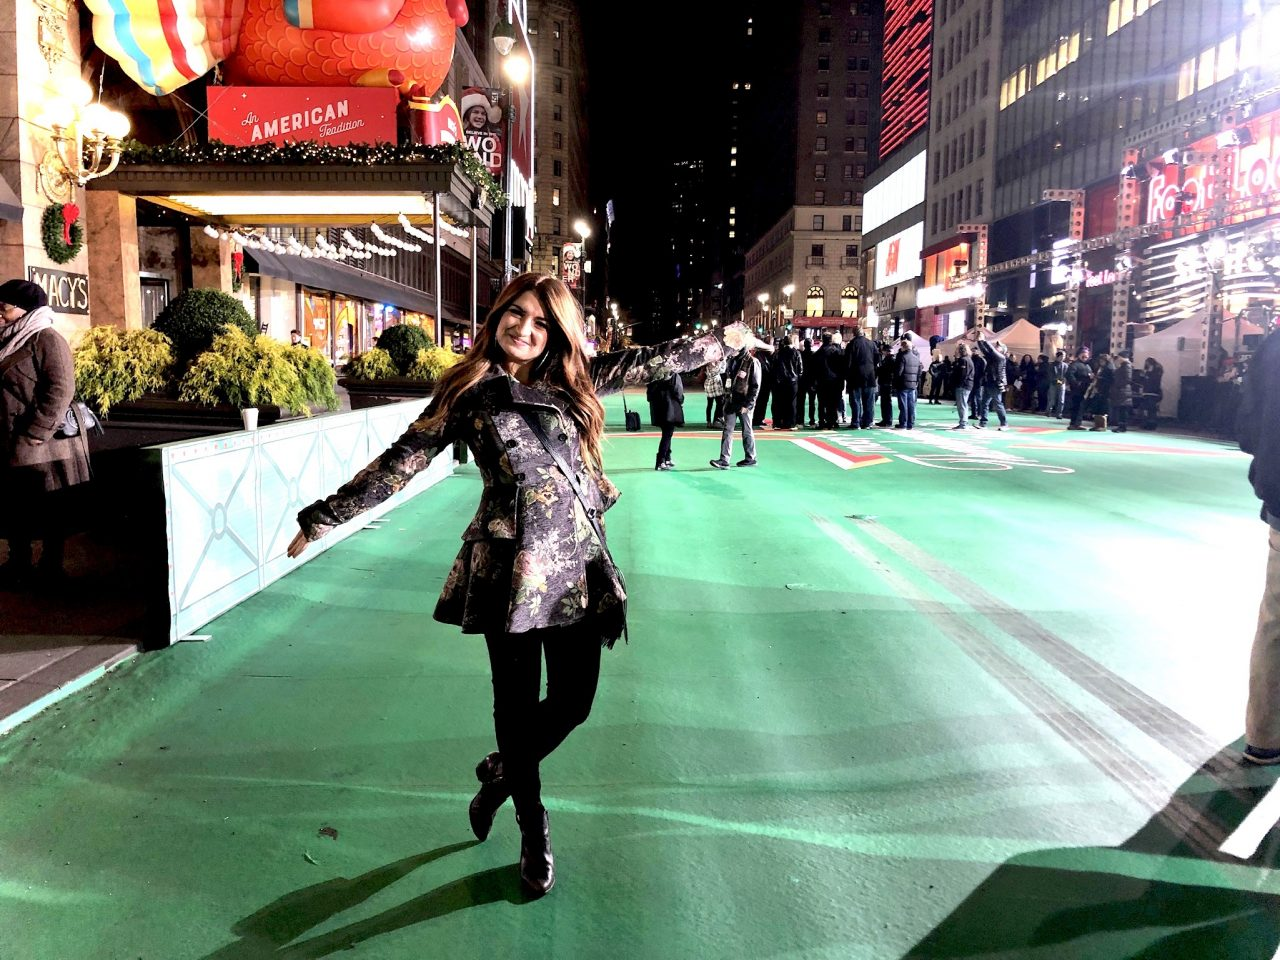 In Her Own Words: Tenille Townes On Performing at the Macy's Thanksgiving Day Parade